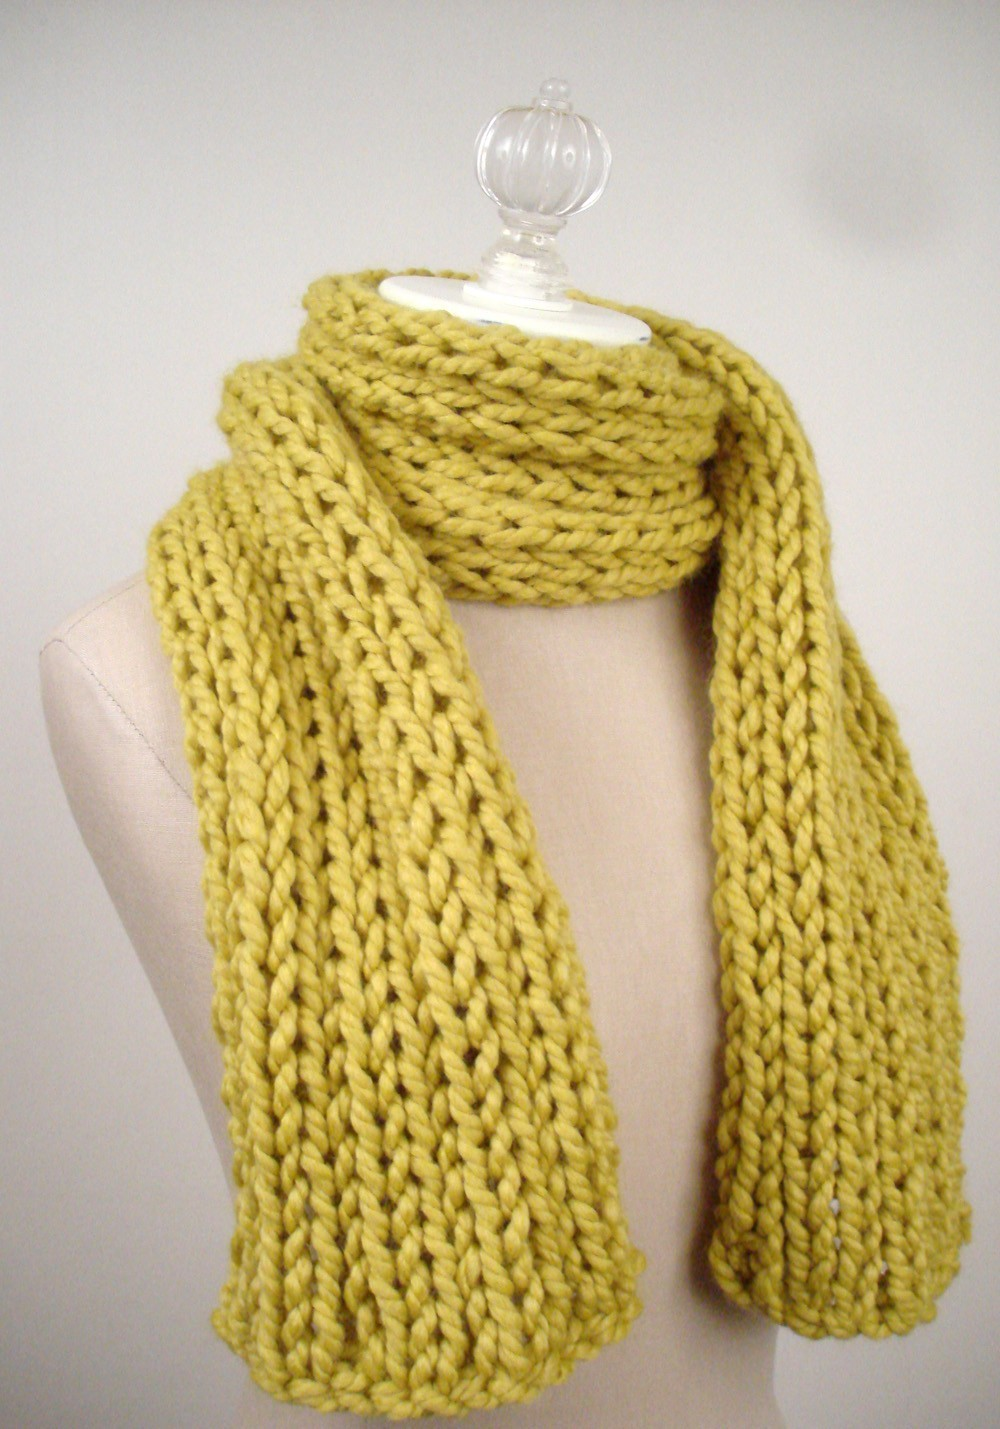 Good Knitting Stitches For Scarves : Scarf Knitting Patterns A Knitting Blog